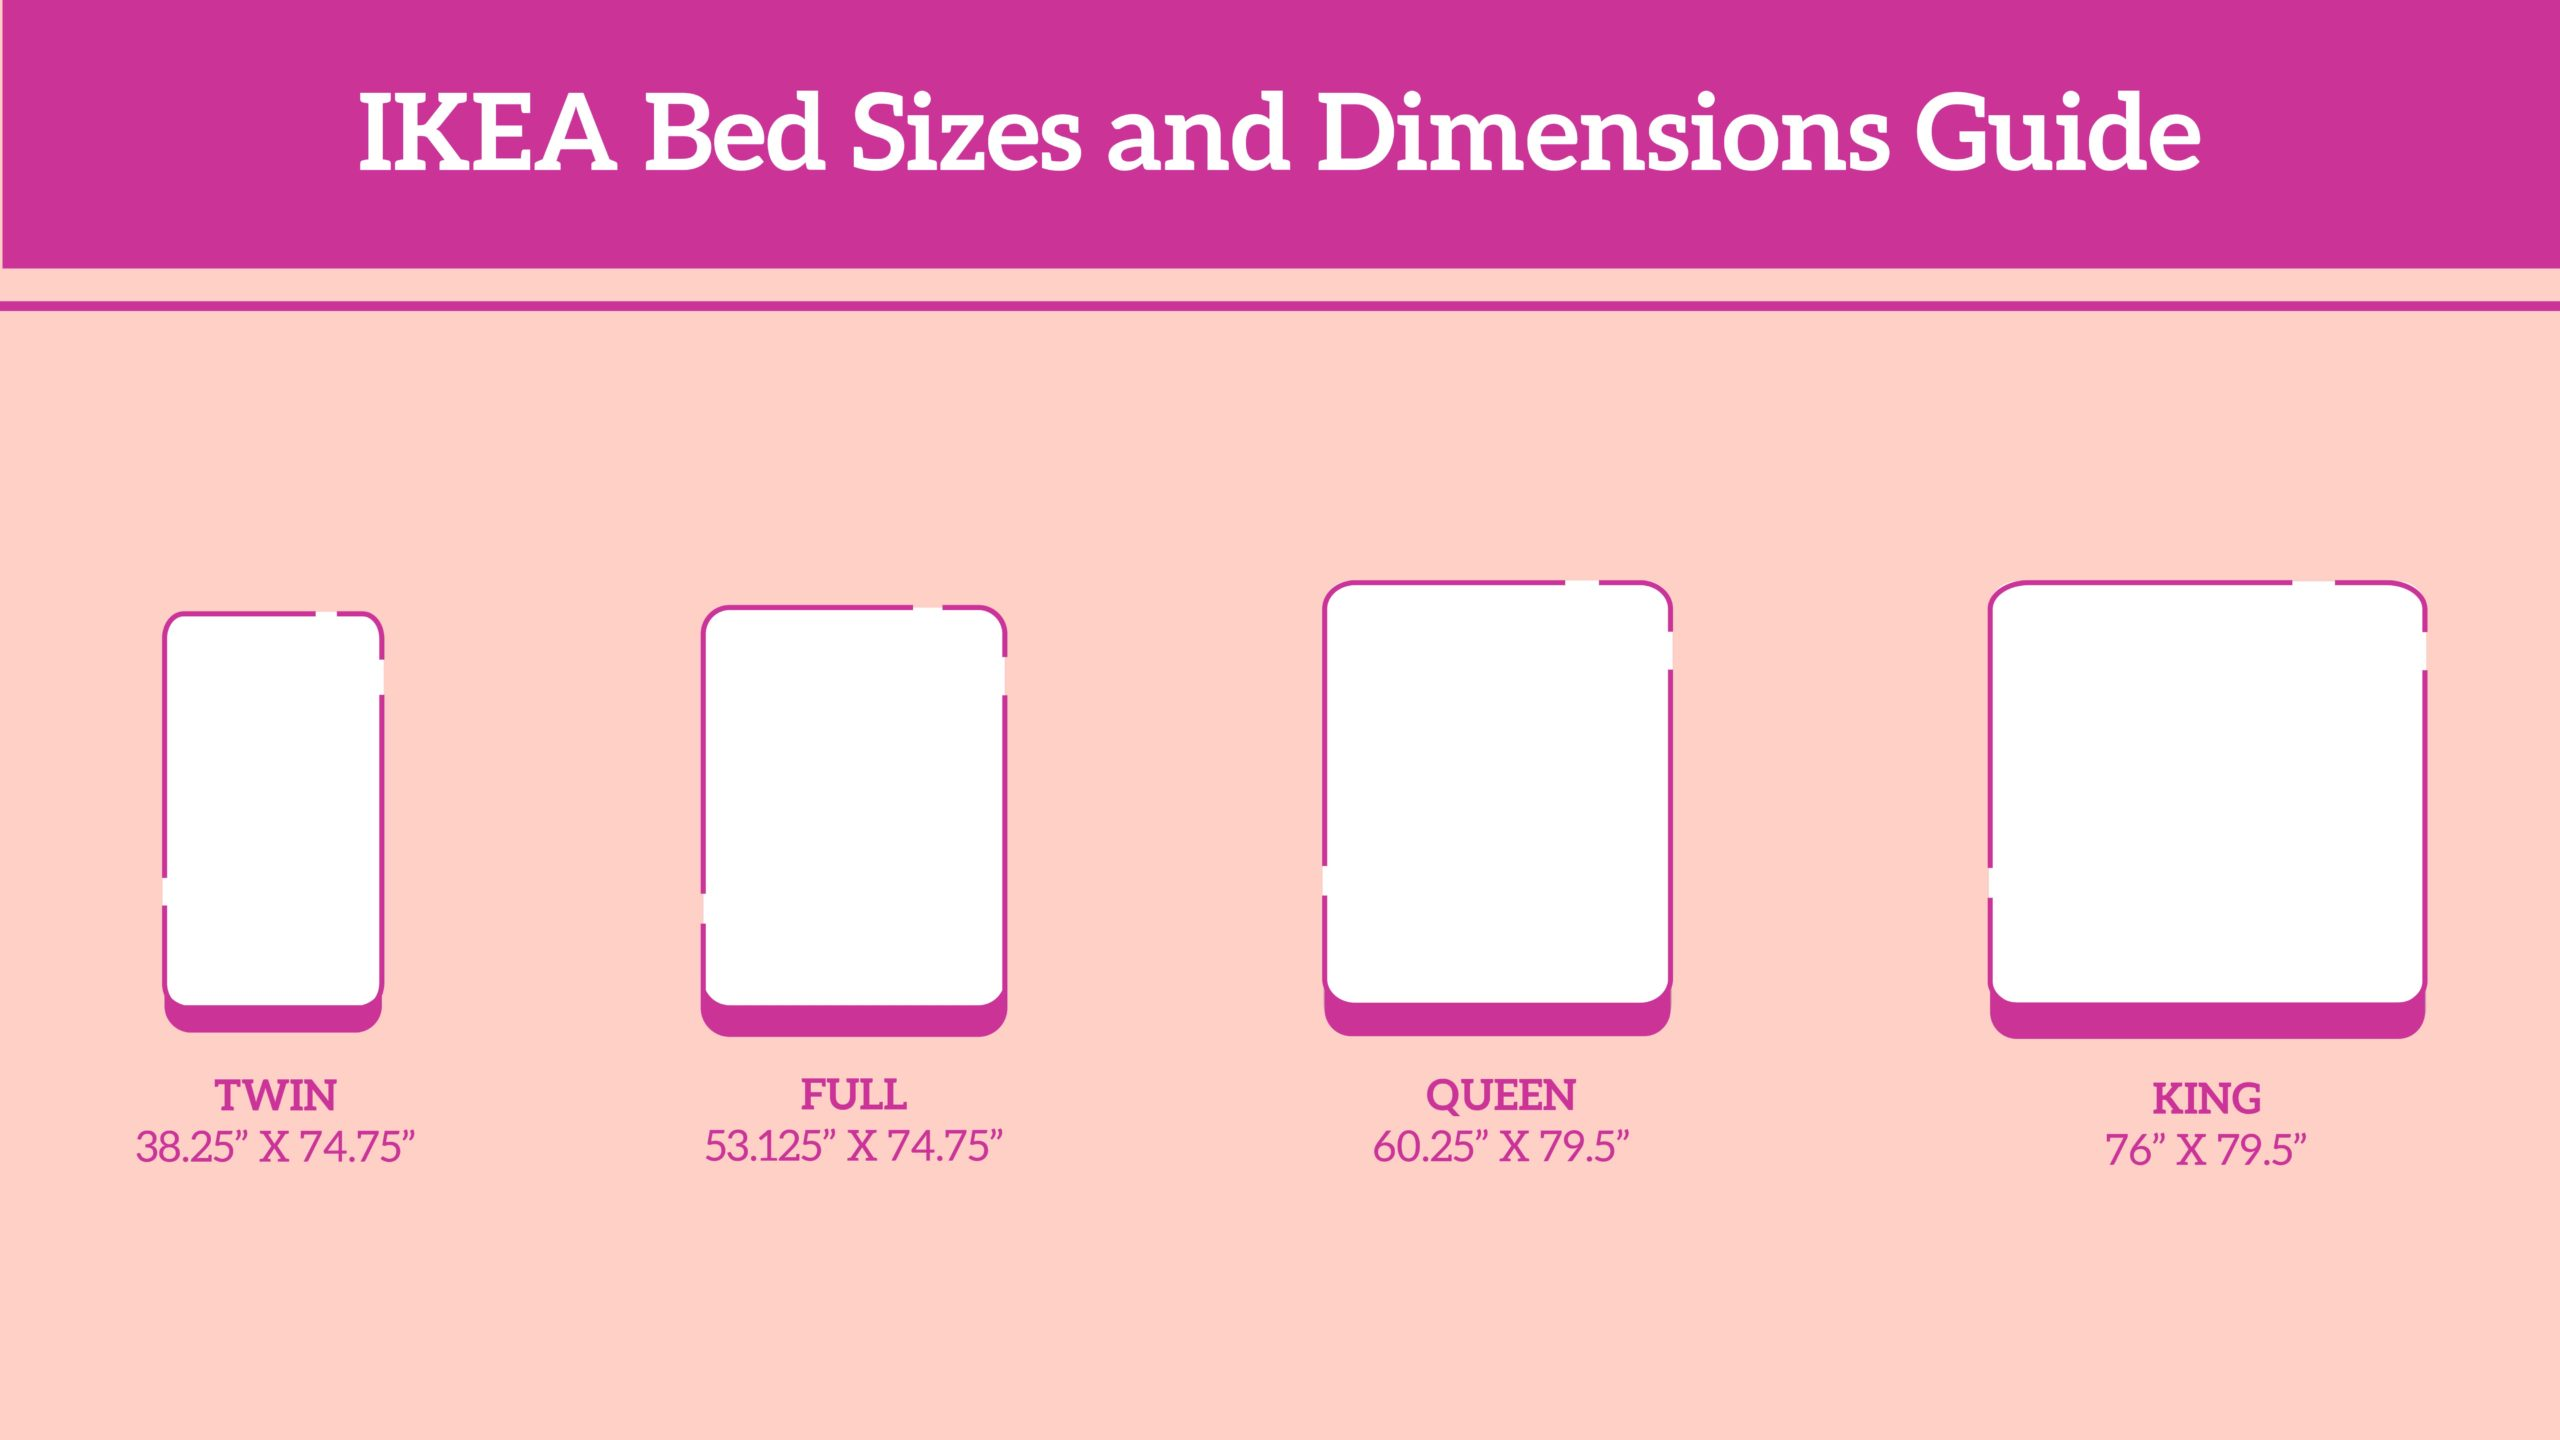 ikea-bed-sizes-and-dimensions-guide